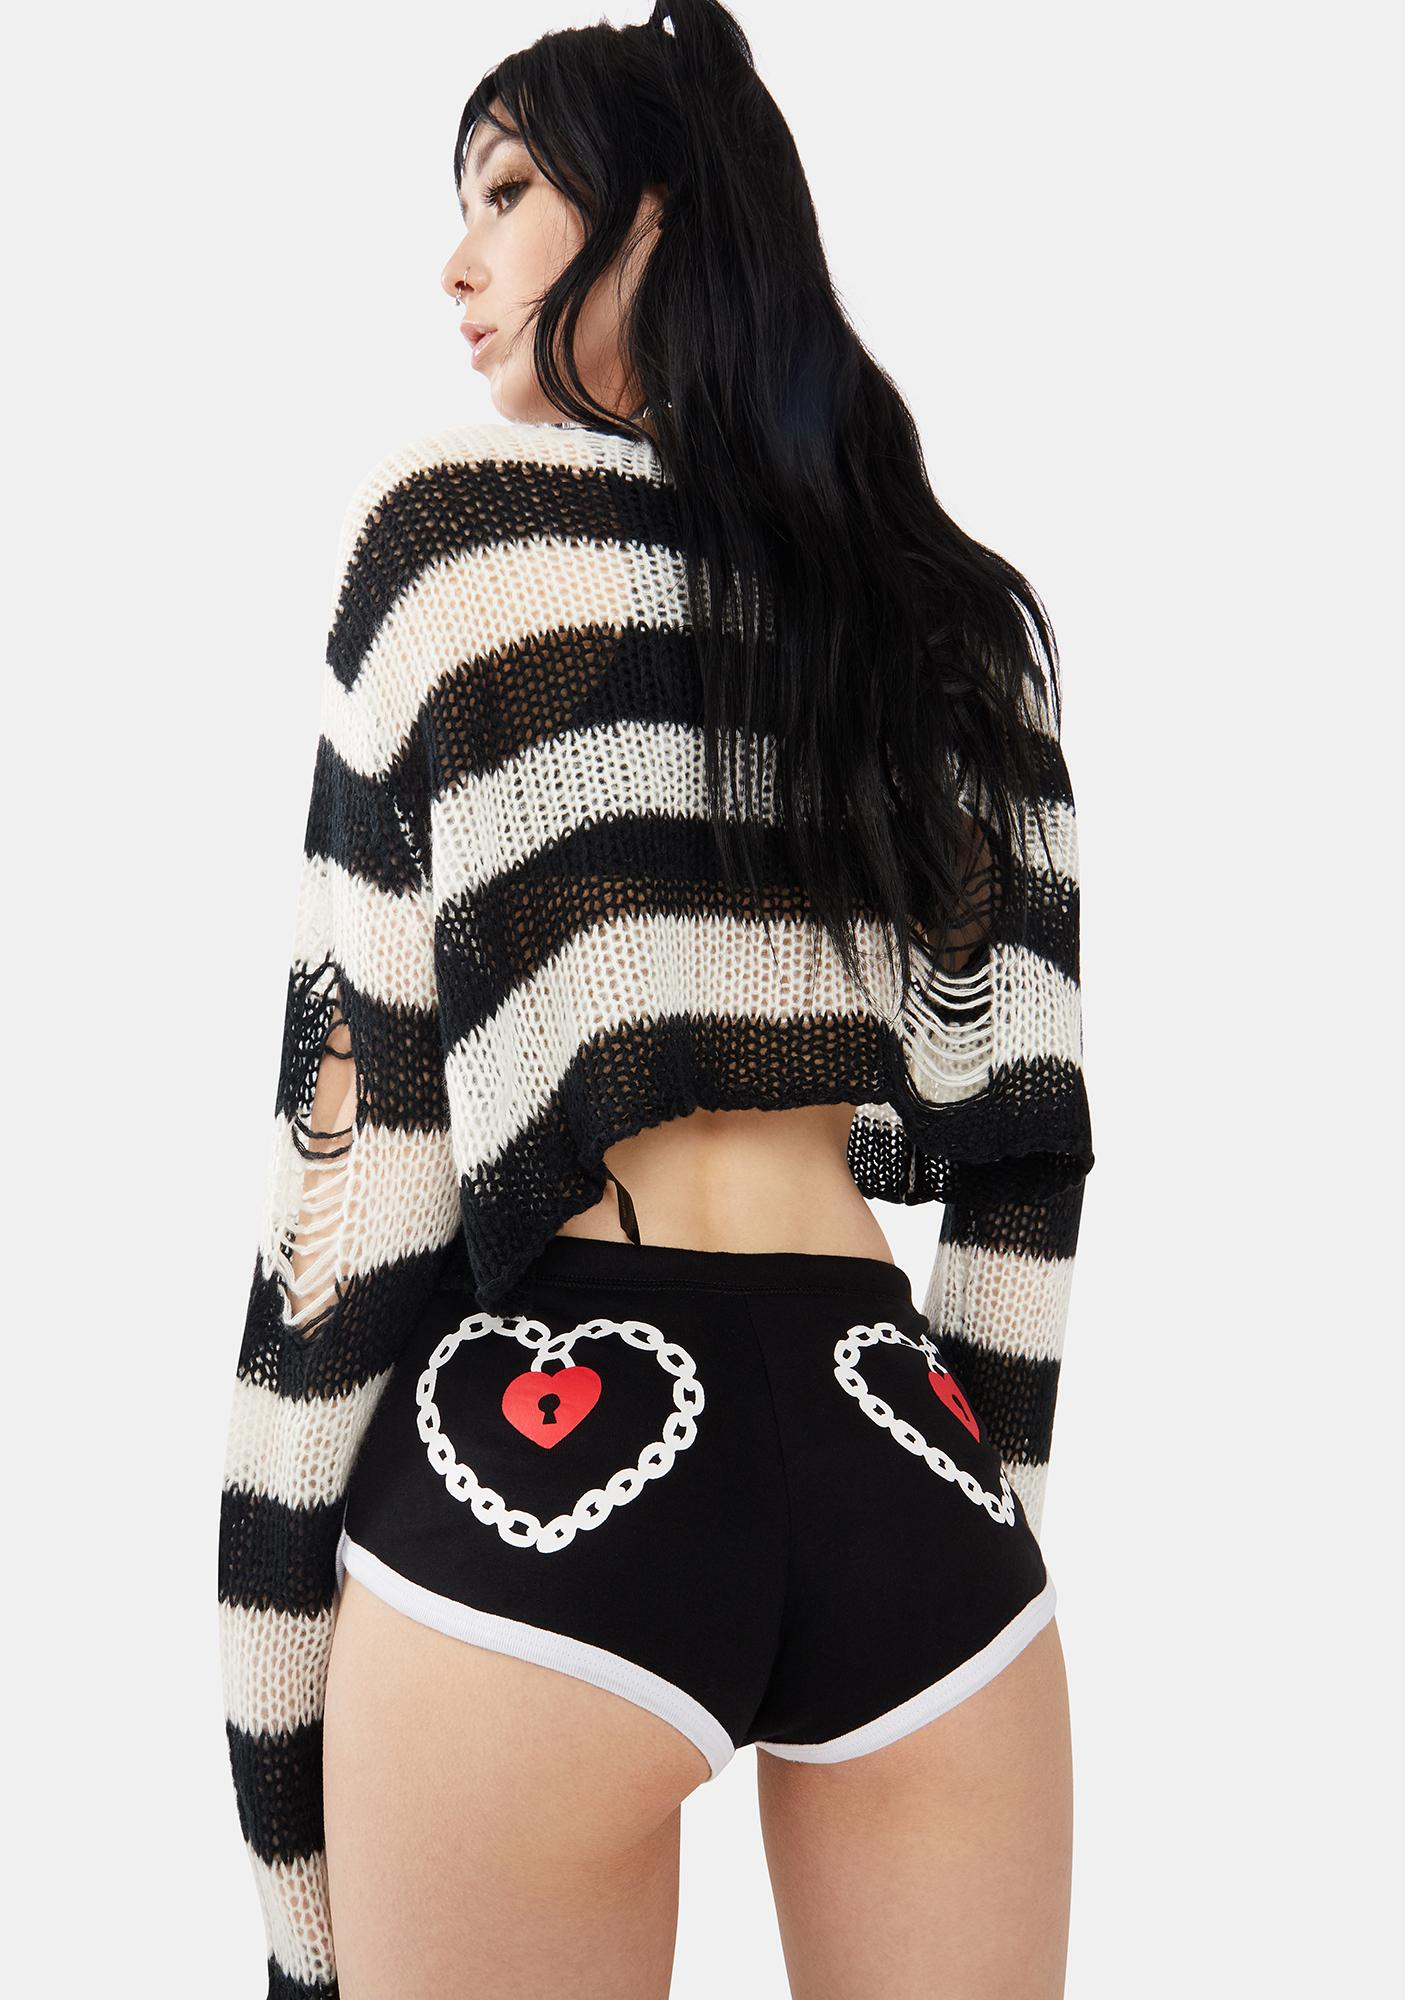 Too Fast Lock Me Up Booty Shorts